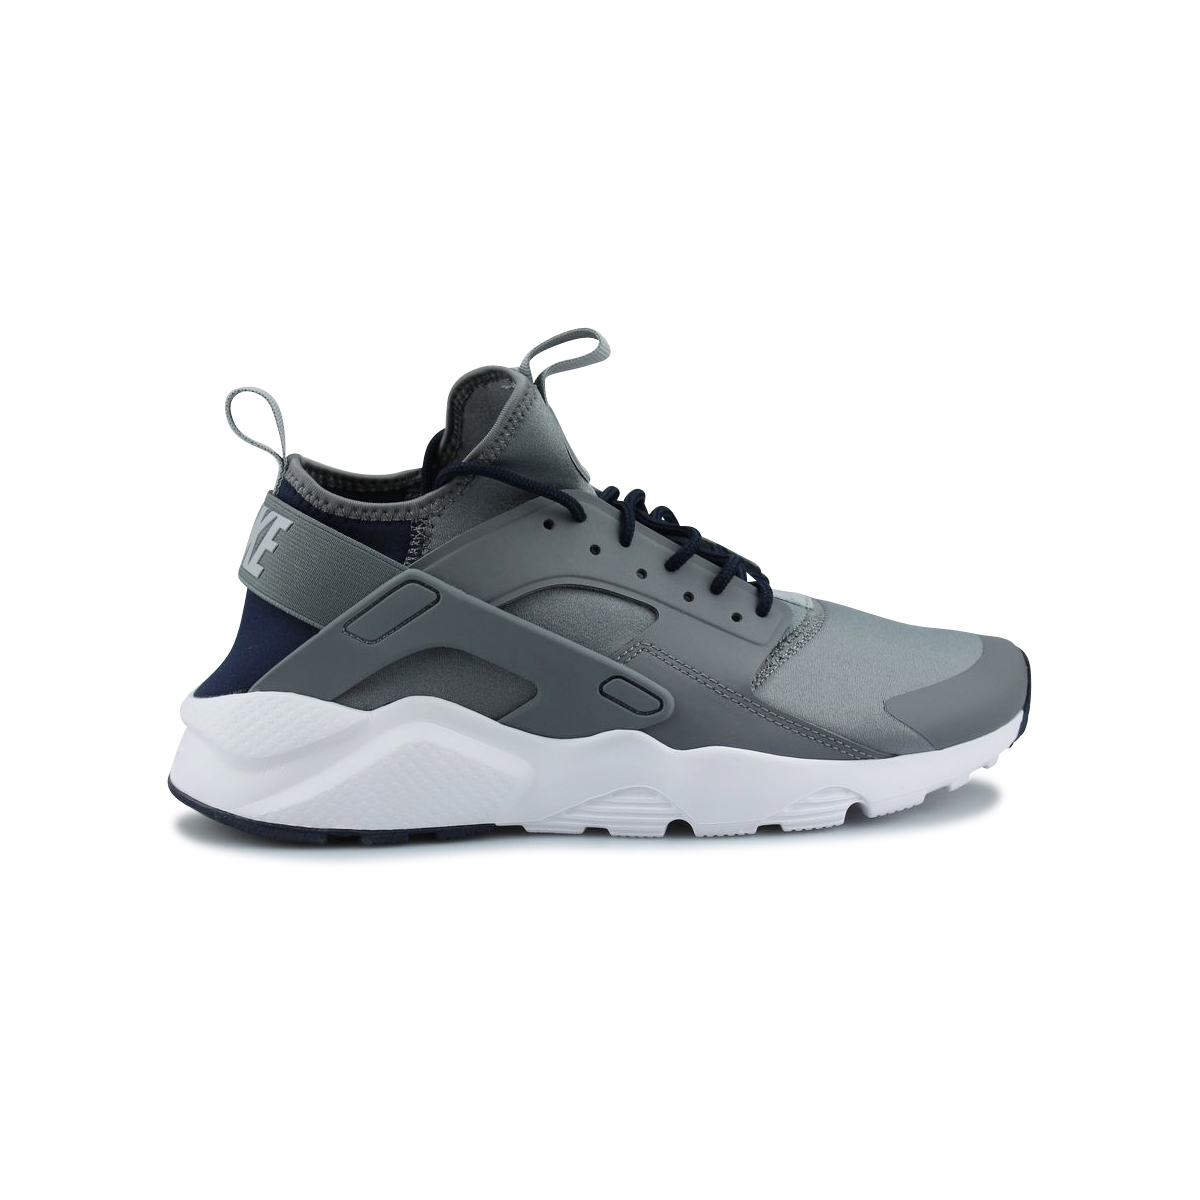 NIKE AIR HUARACHE RUN ULTRA GRIS FRAIS 819685,013. Loading zoom